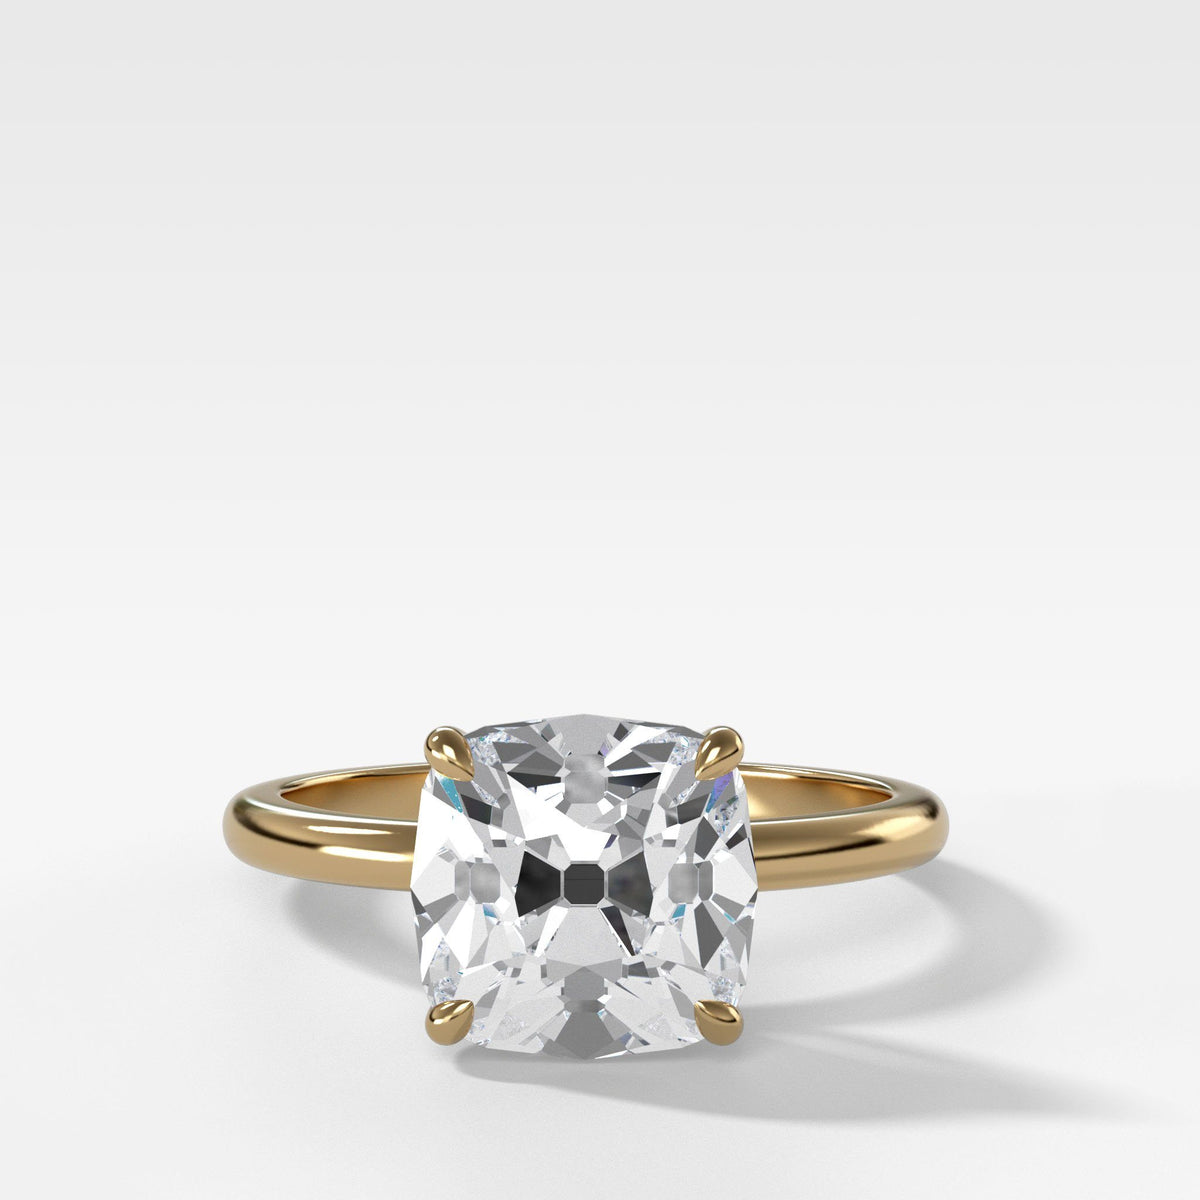 Crescent Solitaire With Old Mine Cut in Yellow Gold by Good Stone